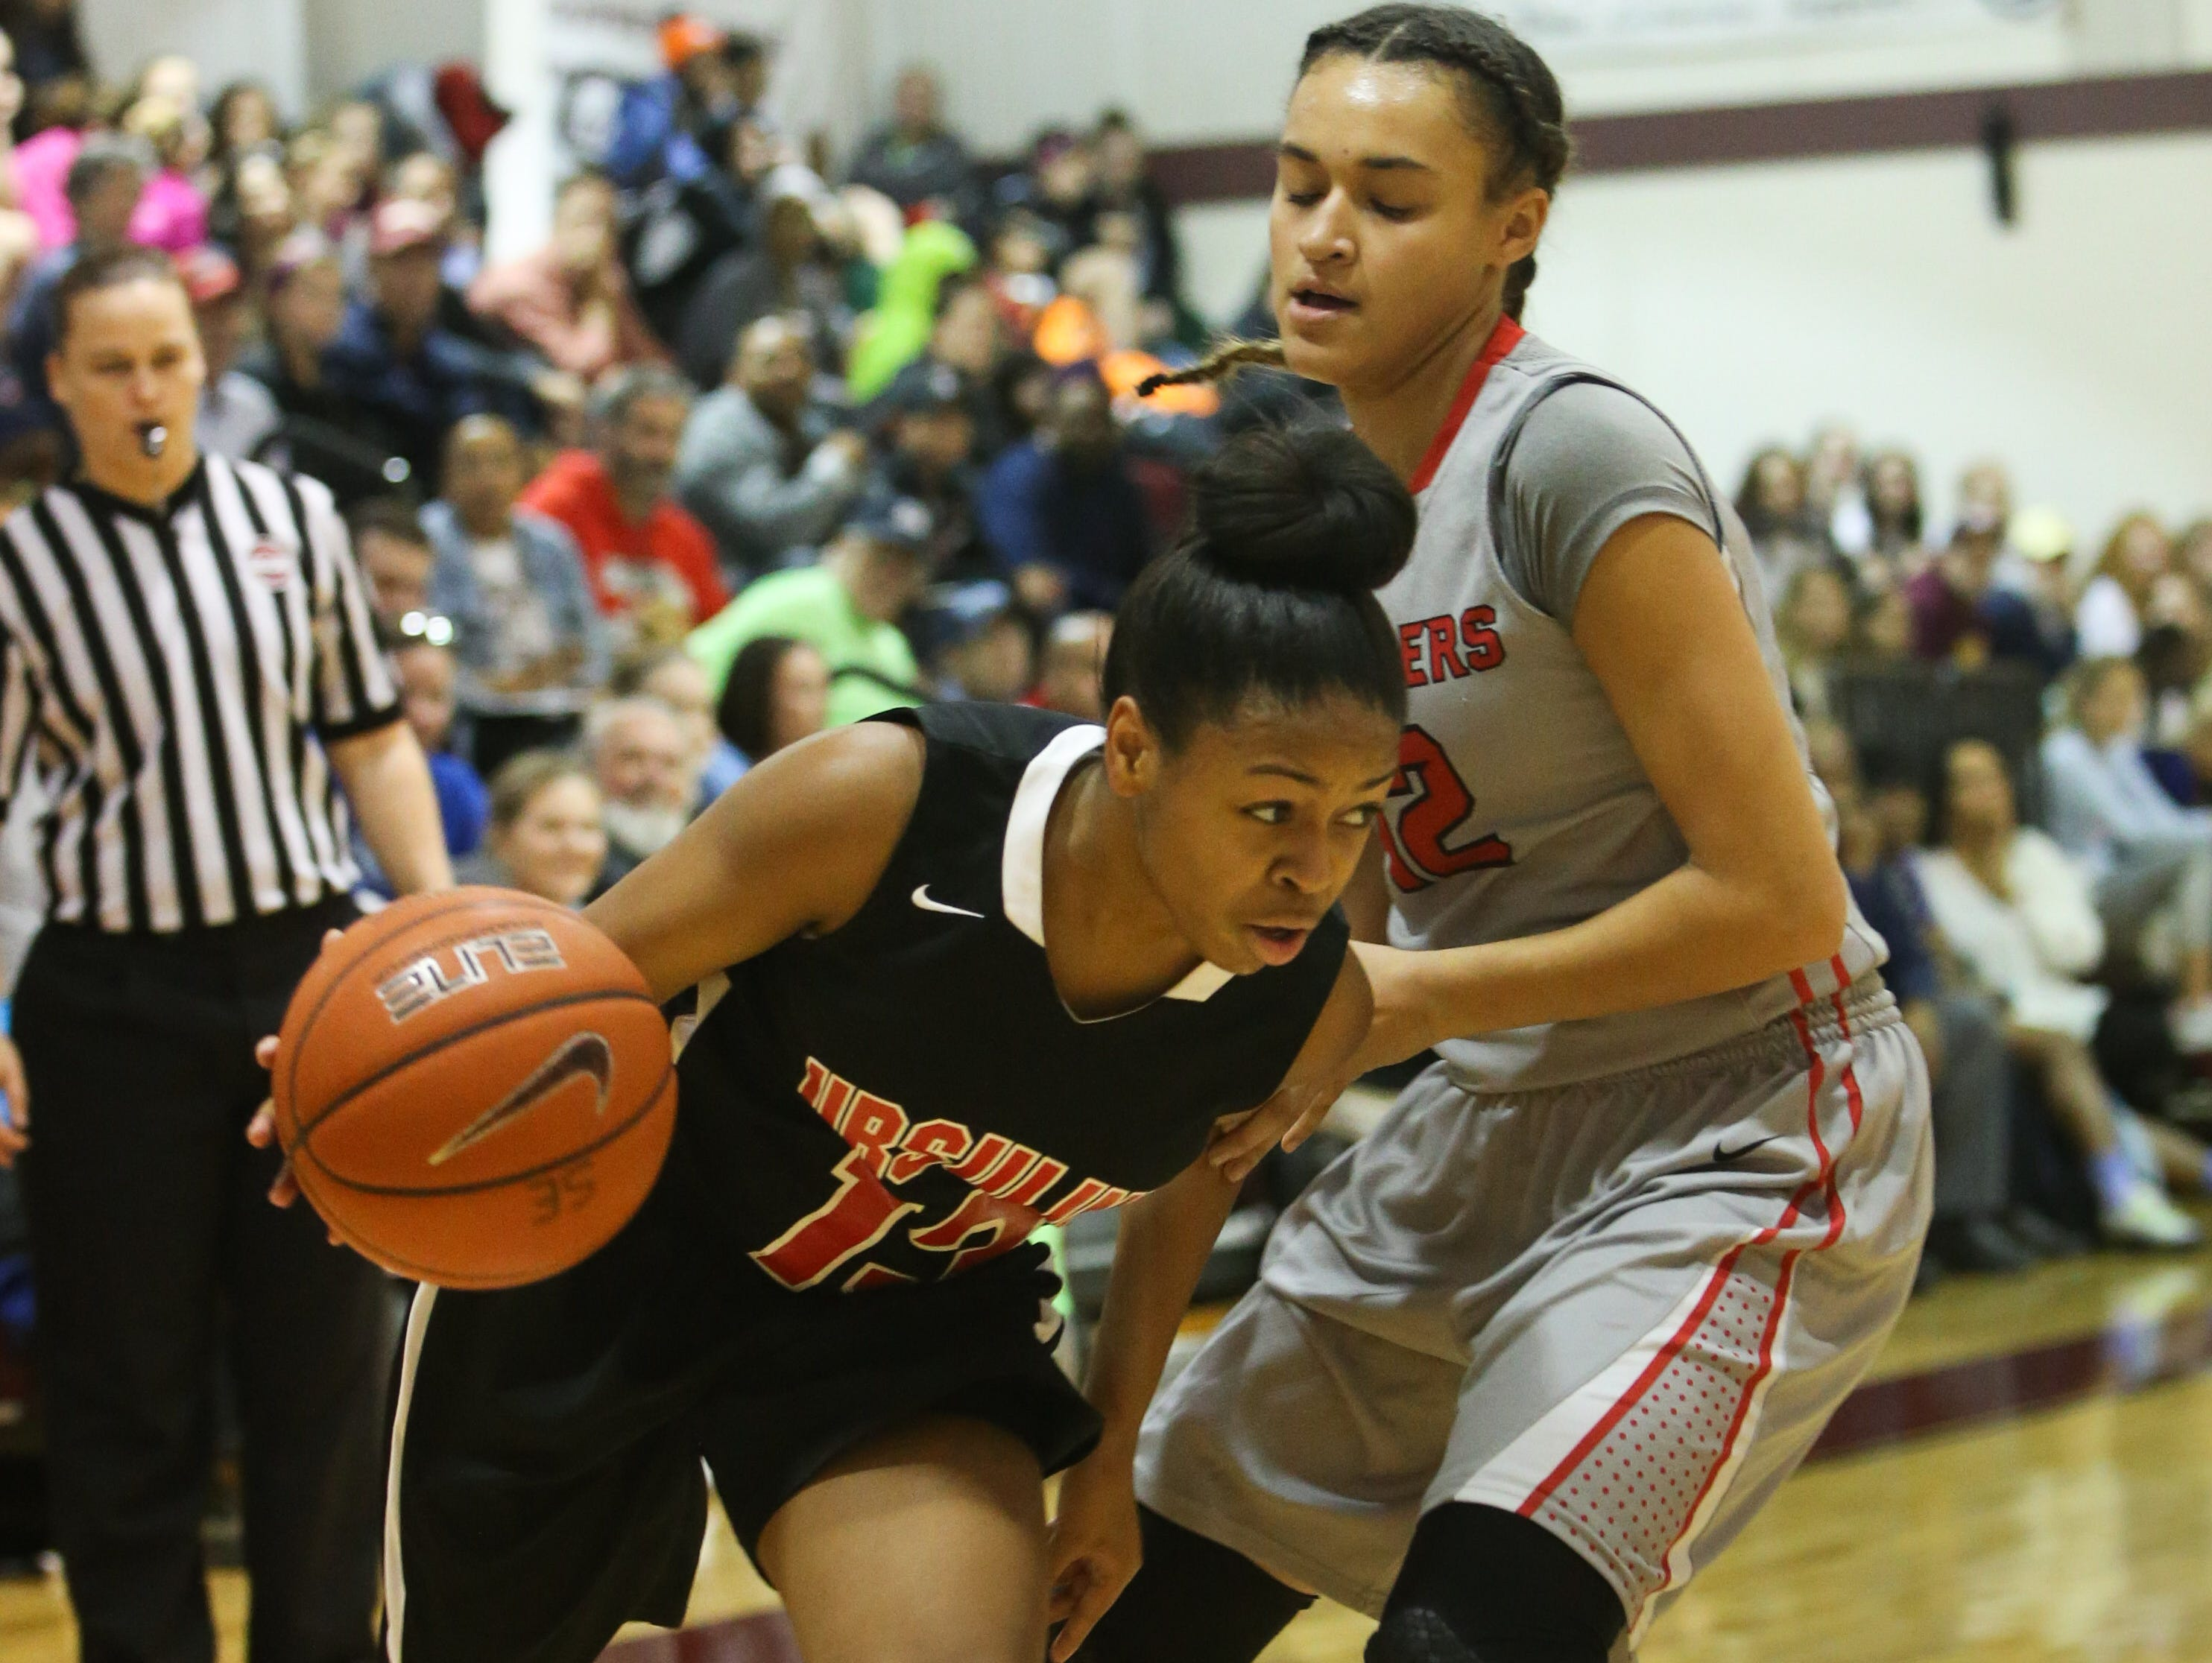 Ursuline guard Sabriya Harris drives past Long Island Lutheran guard Celeste Taylor in the first quarter. Ursuline falls to Long Island Lutheran 52-55 in the semifinals of the Saint Francis Healthcare Cup of the Diamond State Classic at St. Elizabeth High School Tuesday.